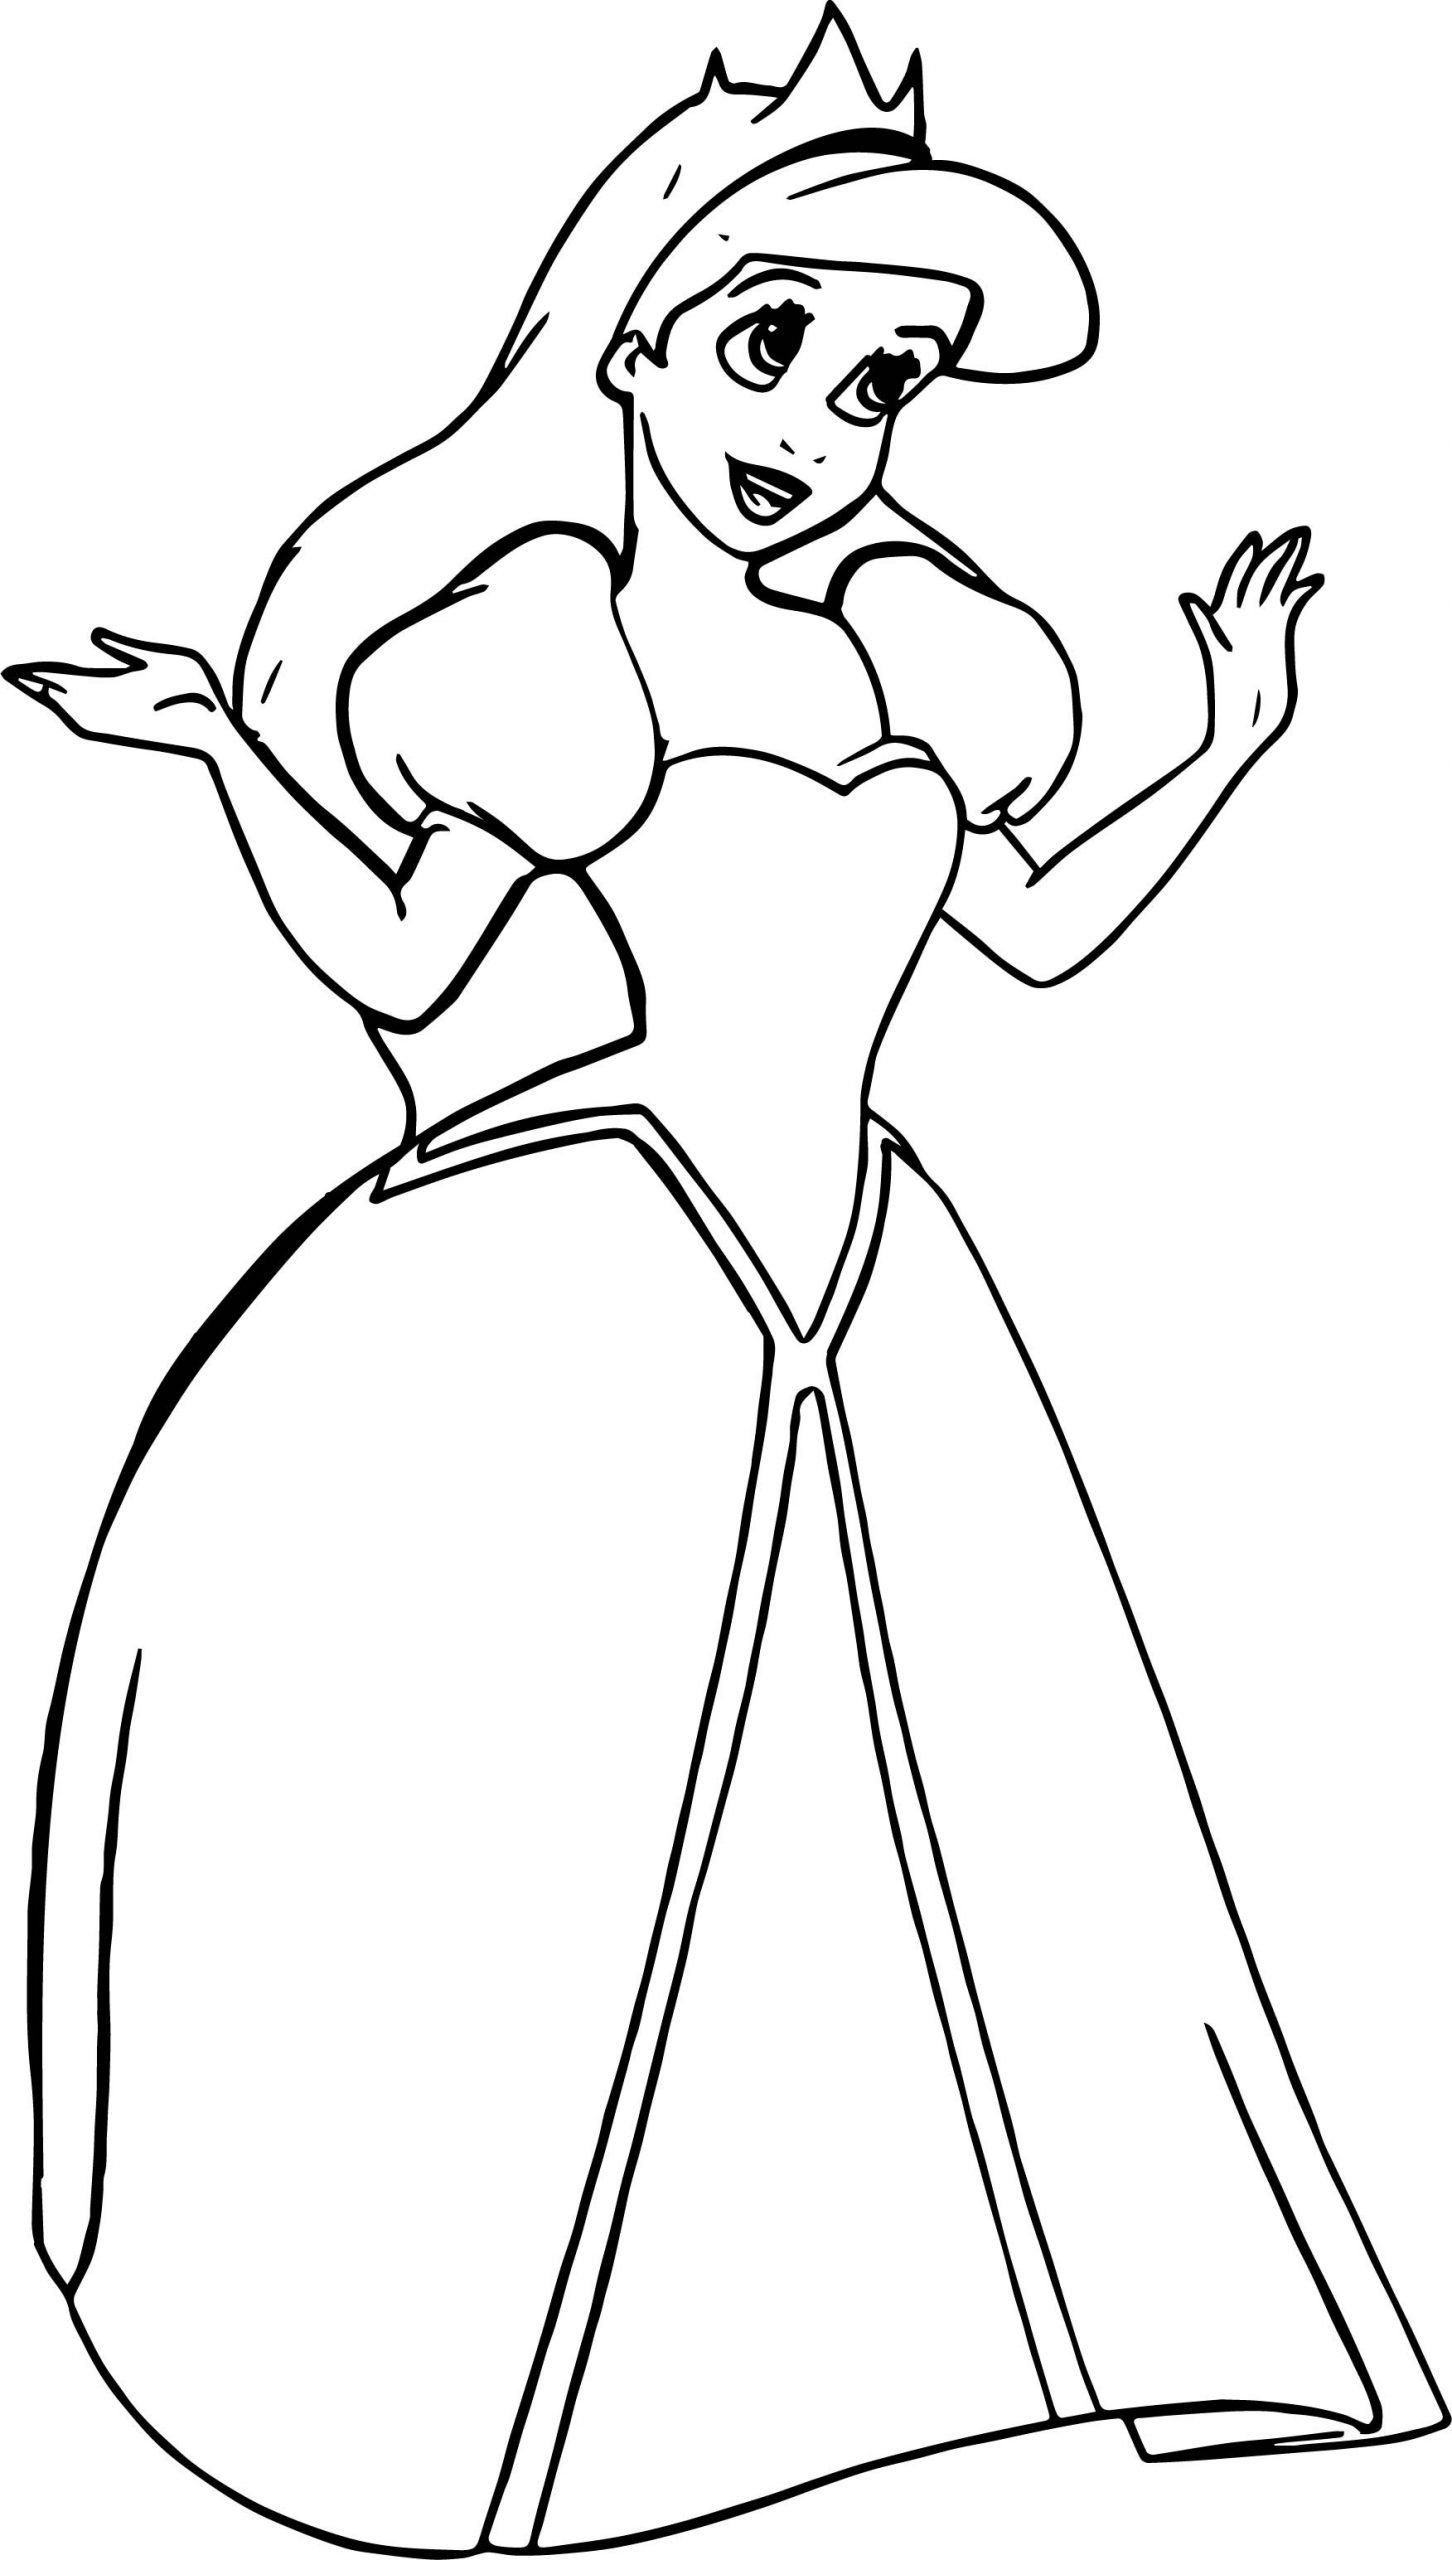 Coloring Pages For Kids Ariel Ariel Coloring Pages In 2020 Ariel Coloring Pages Disney Princess Coloring Pages Disney Princess Colors